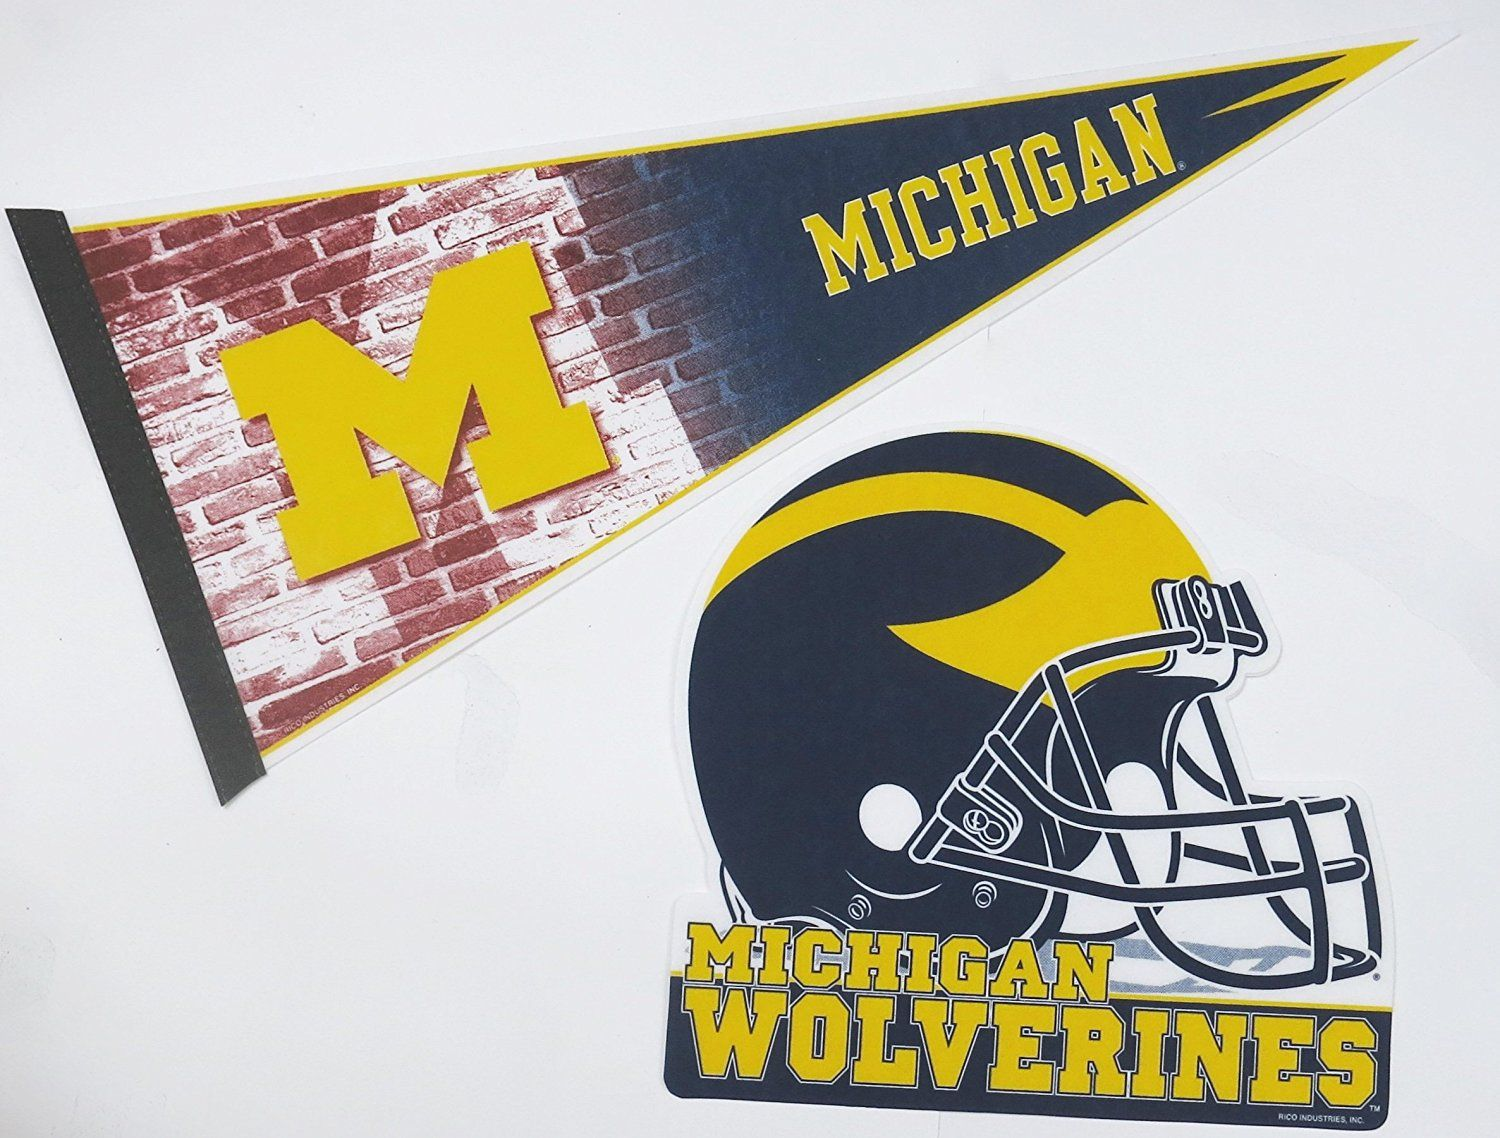 Michigan wolverines nfl wall decor one 17 x 30 large pennant michigan wolverines nfl wall decor one 17 x 30 large pennant design and 12 x 12 one helmet design be sure to check out this awesome product amipublicfo Image collections